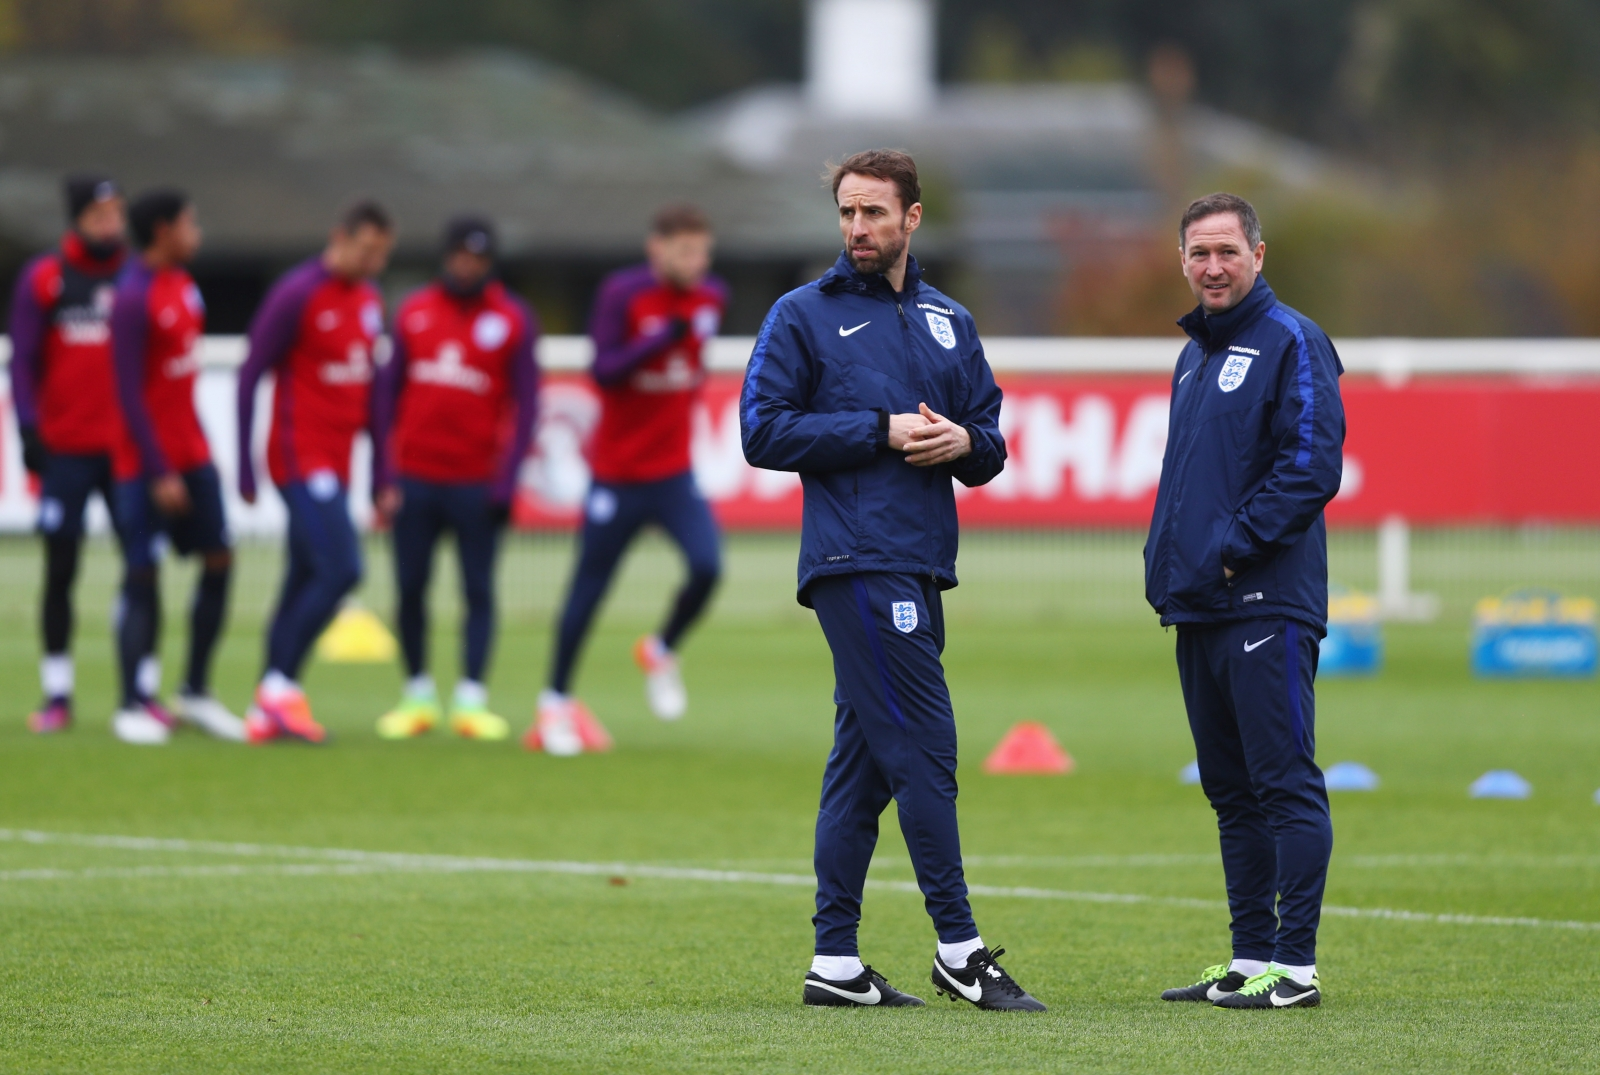 Member of Chelsea's coaching staff to take up England role